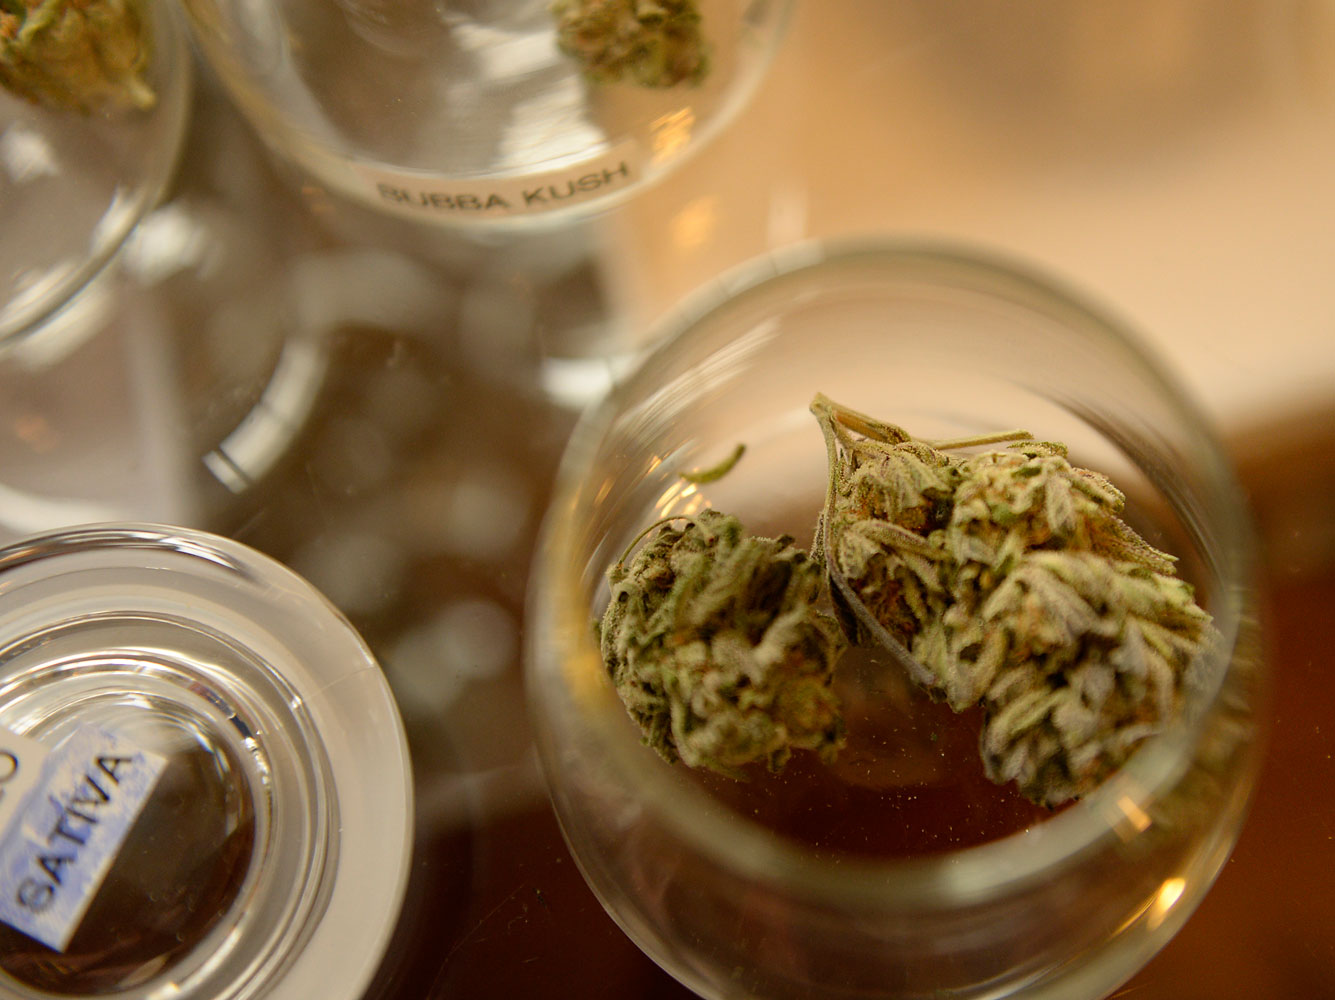 Marijuana in jars for customers to view at 3D Cannabis Center in Denver, Jan. 01 2014.